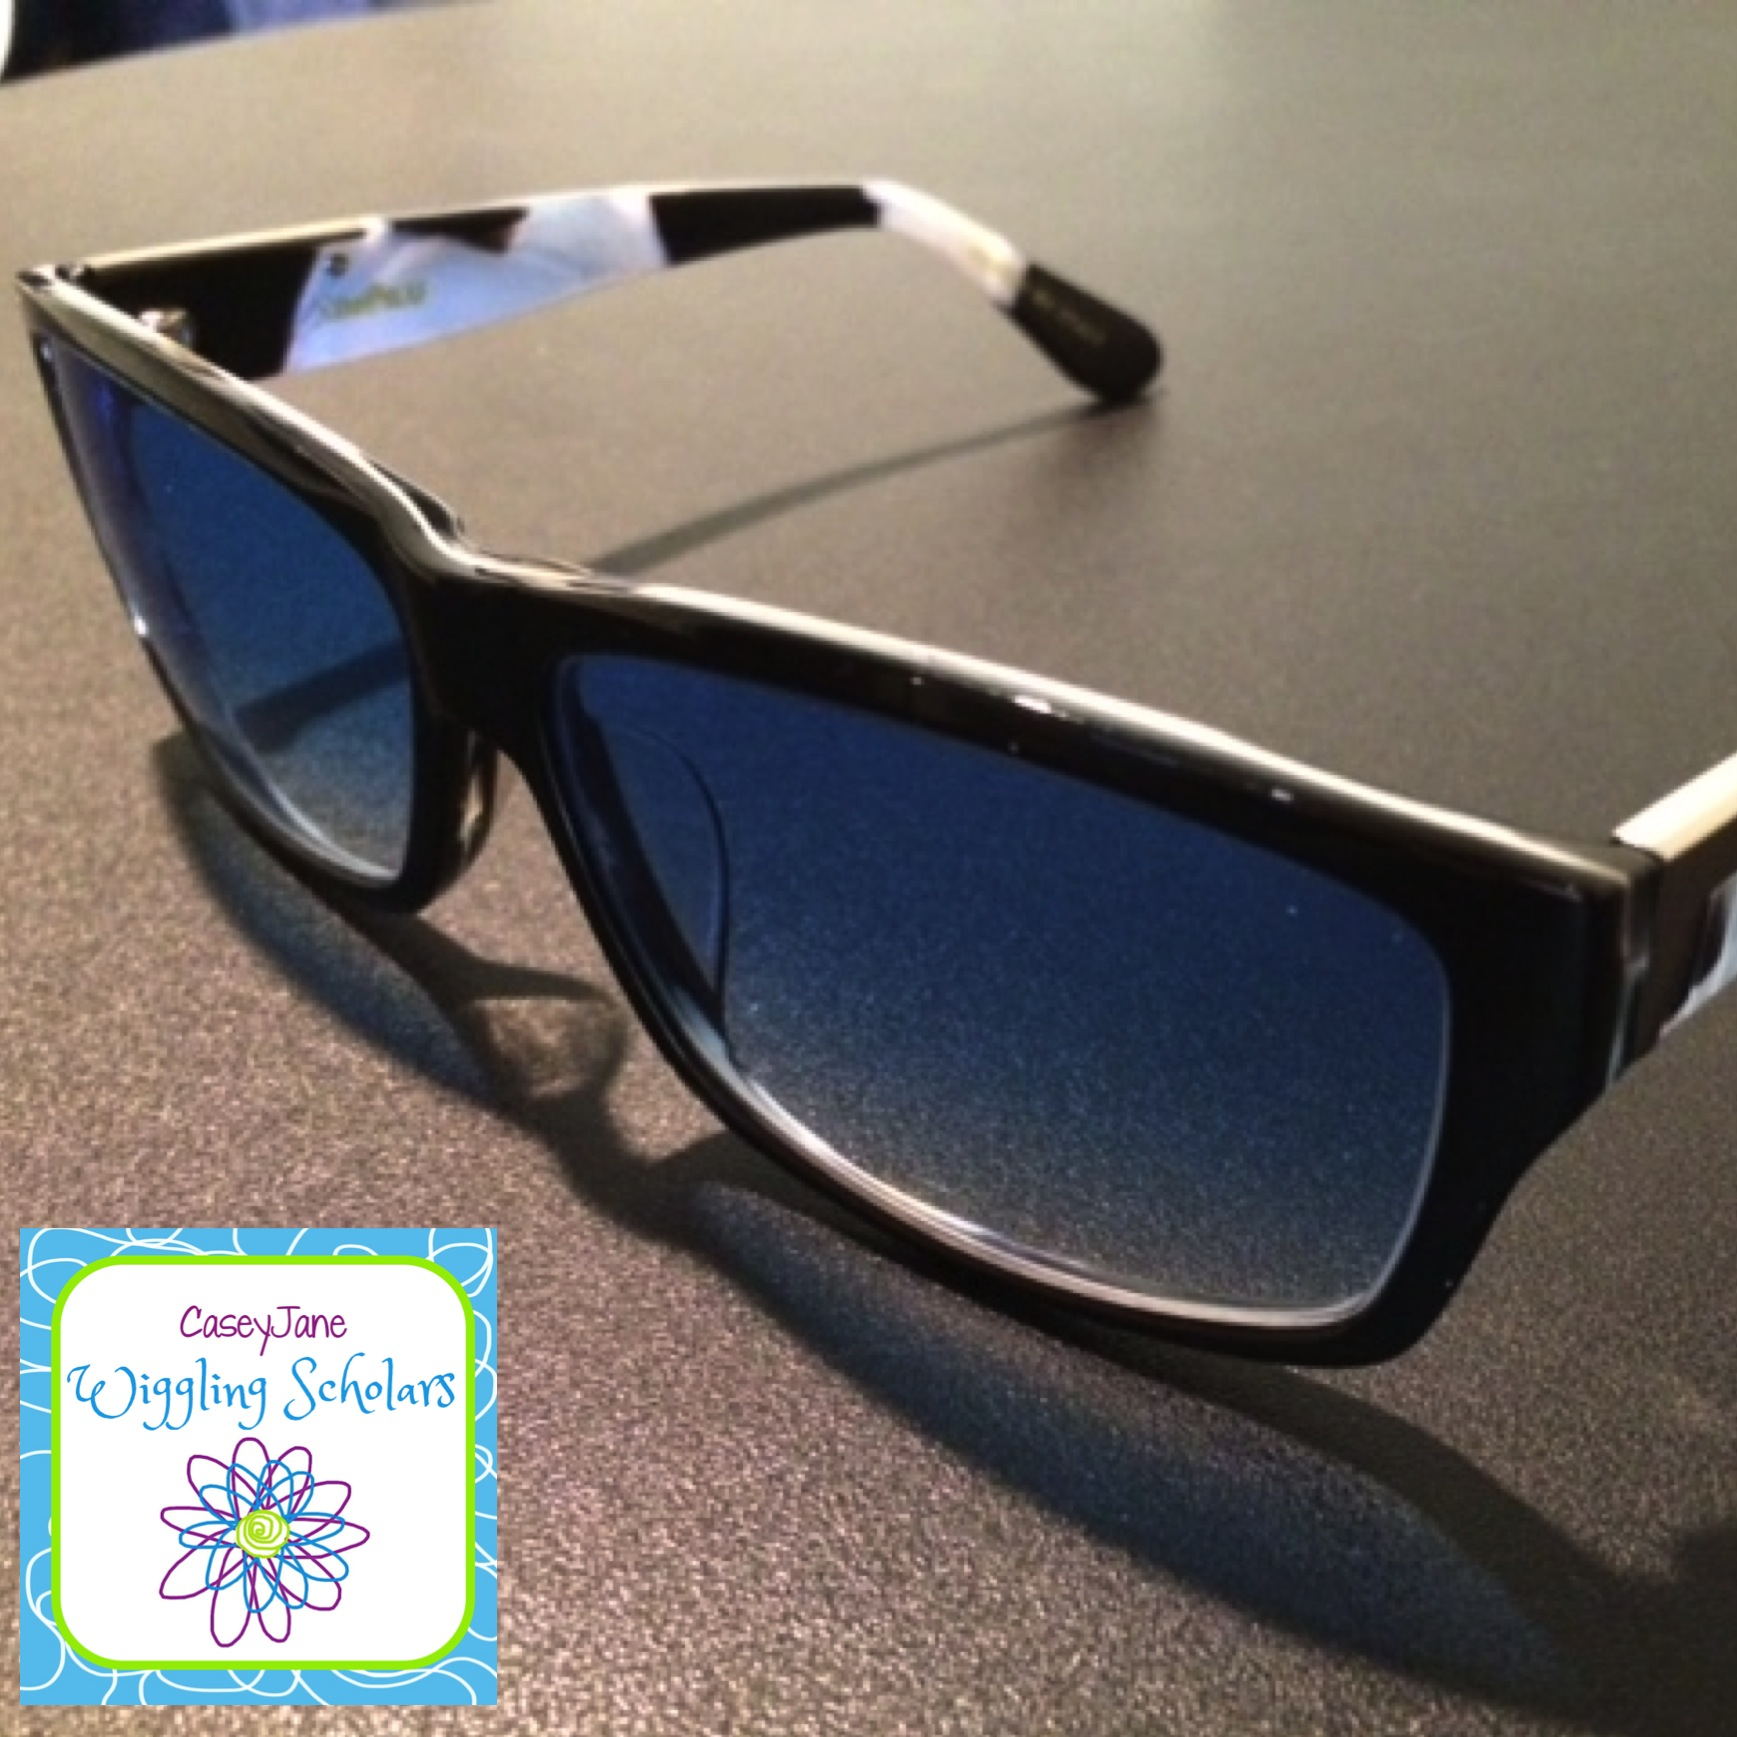 Picture of sunglasses from GlassesShop.com